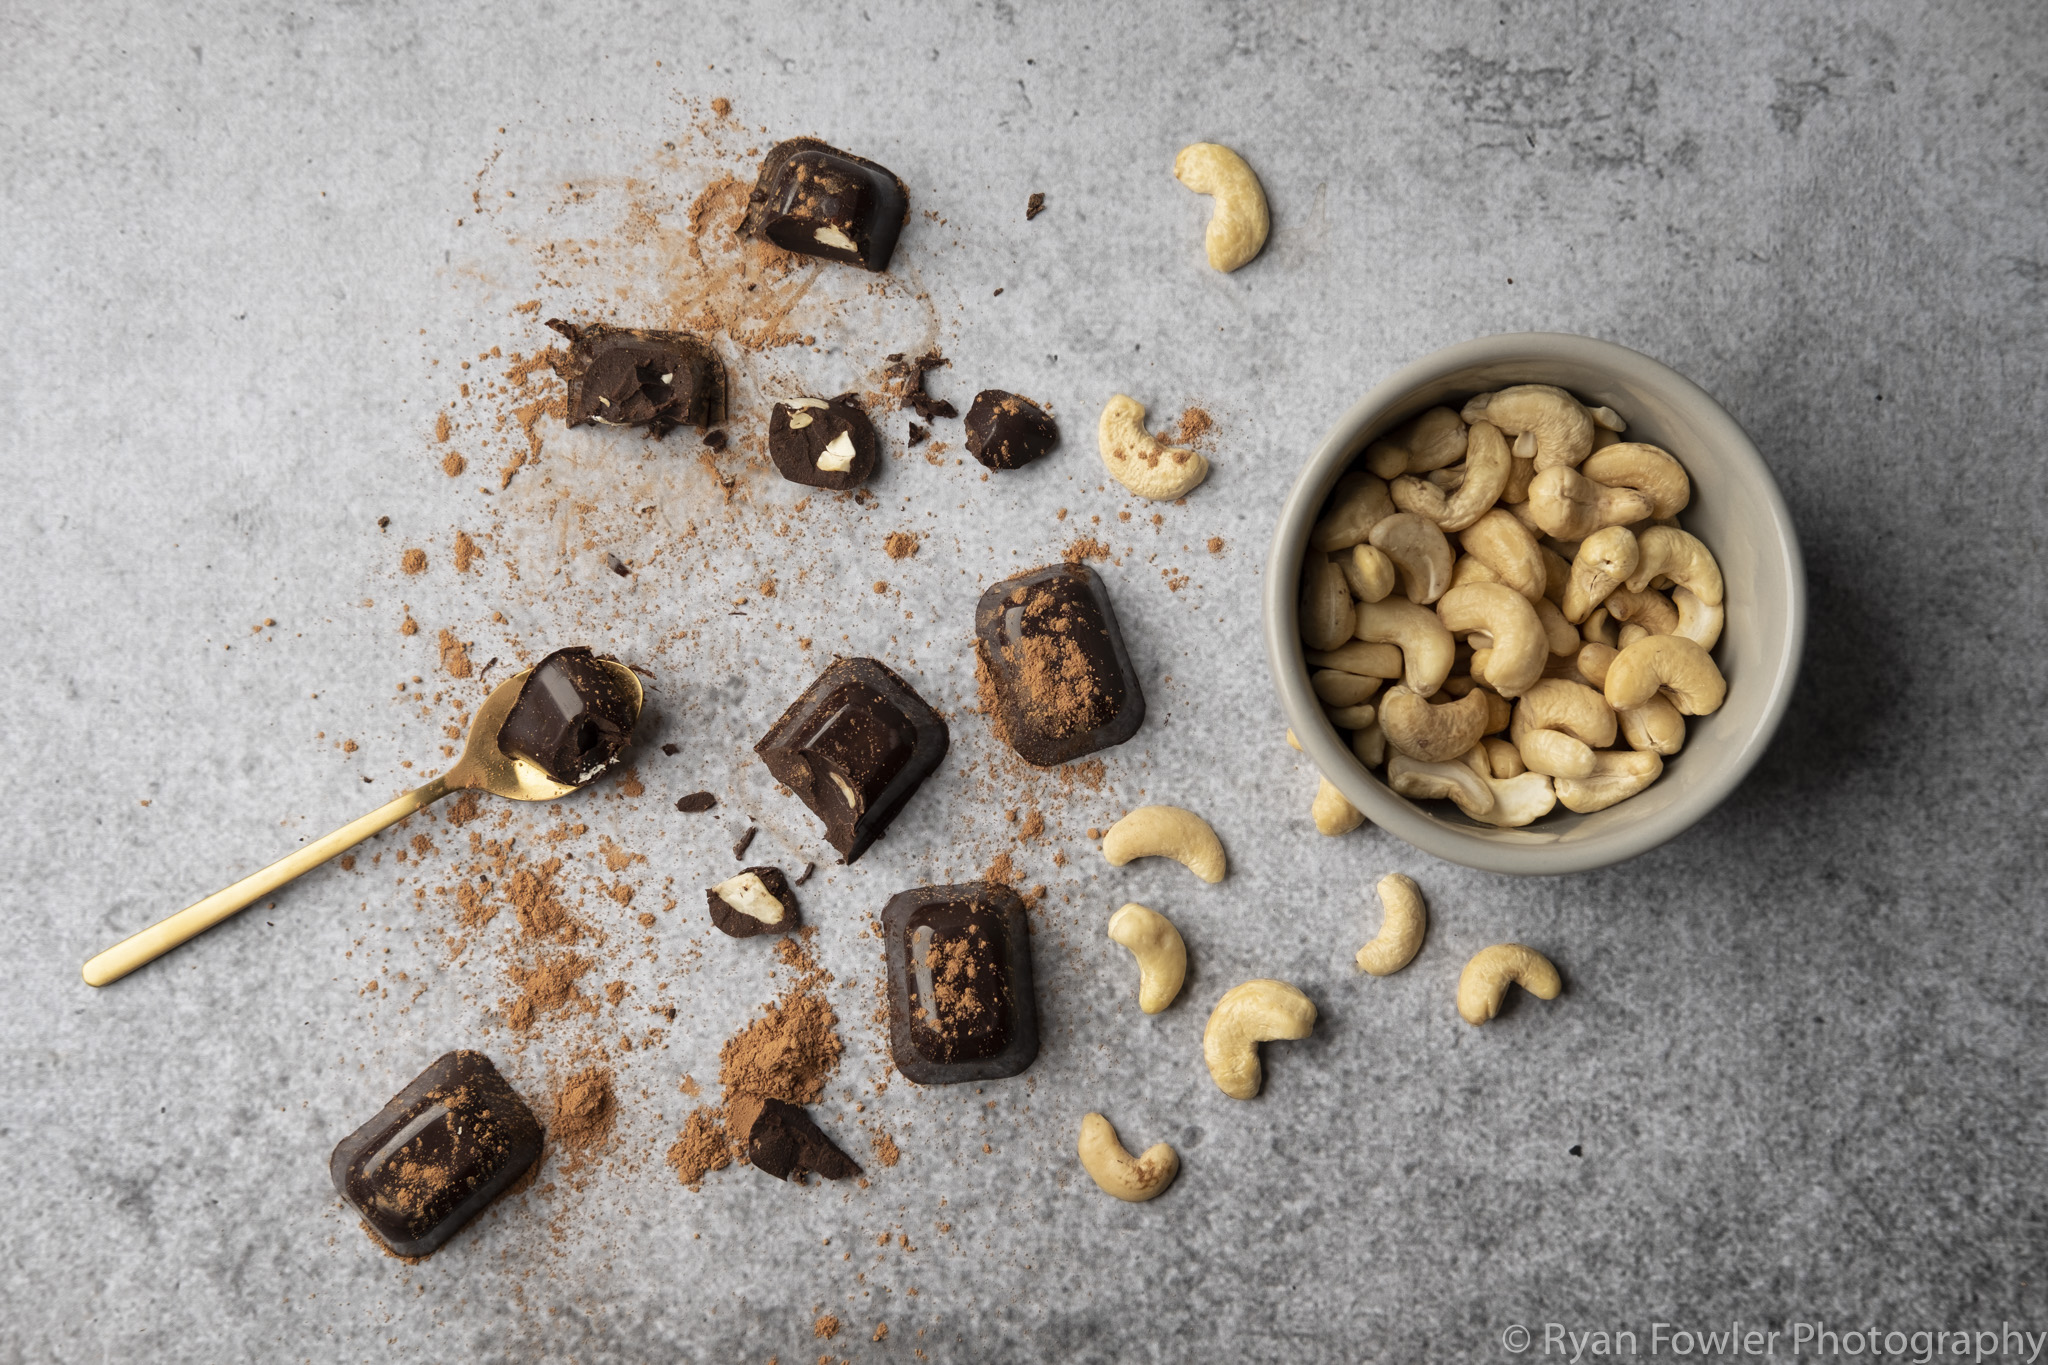 Commercial food, alcohol and product photography australia